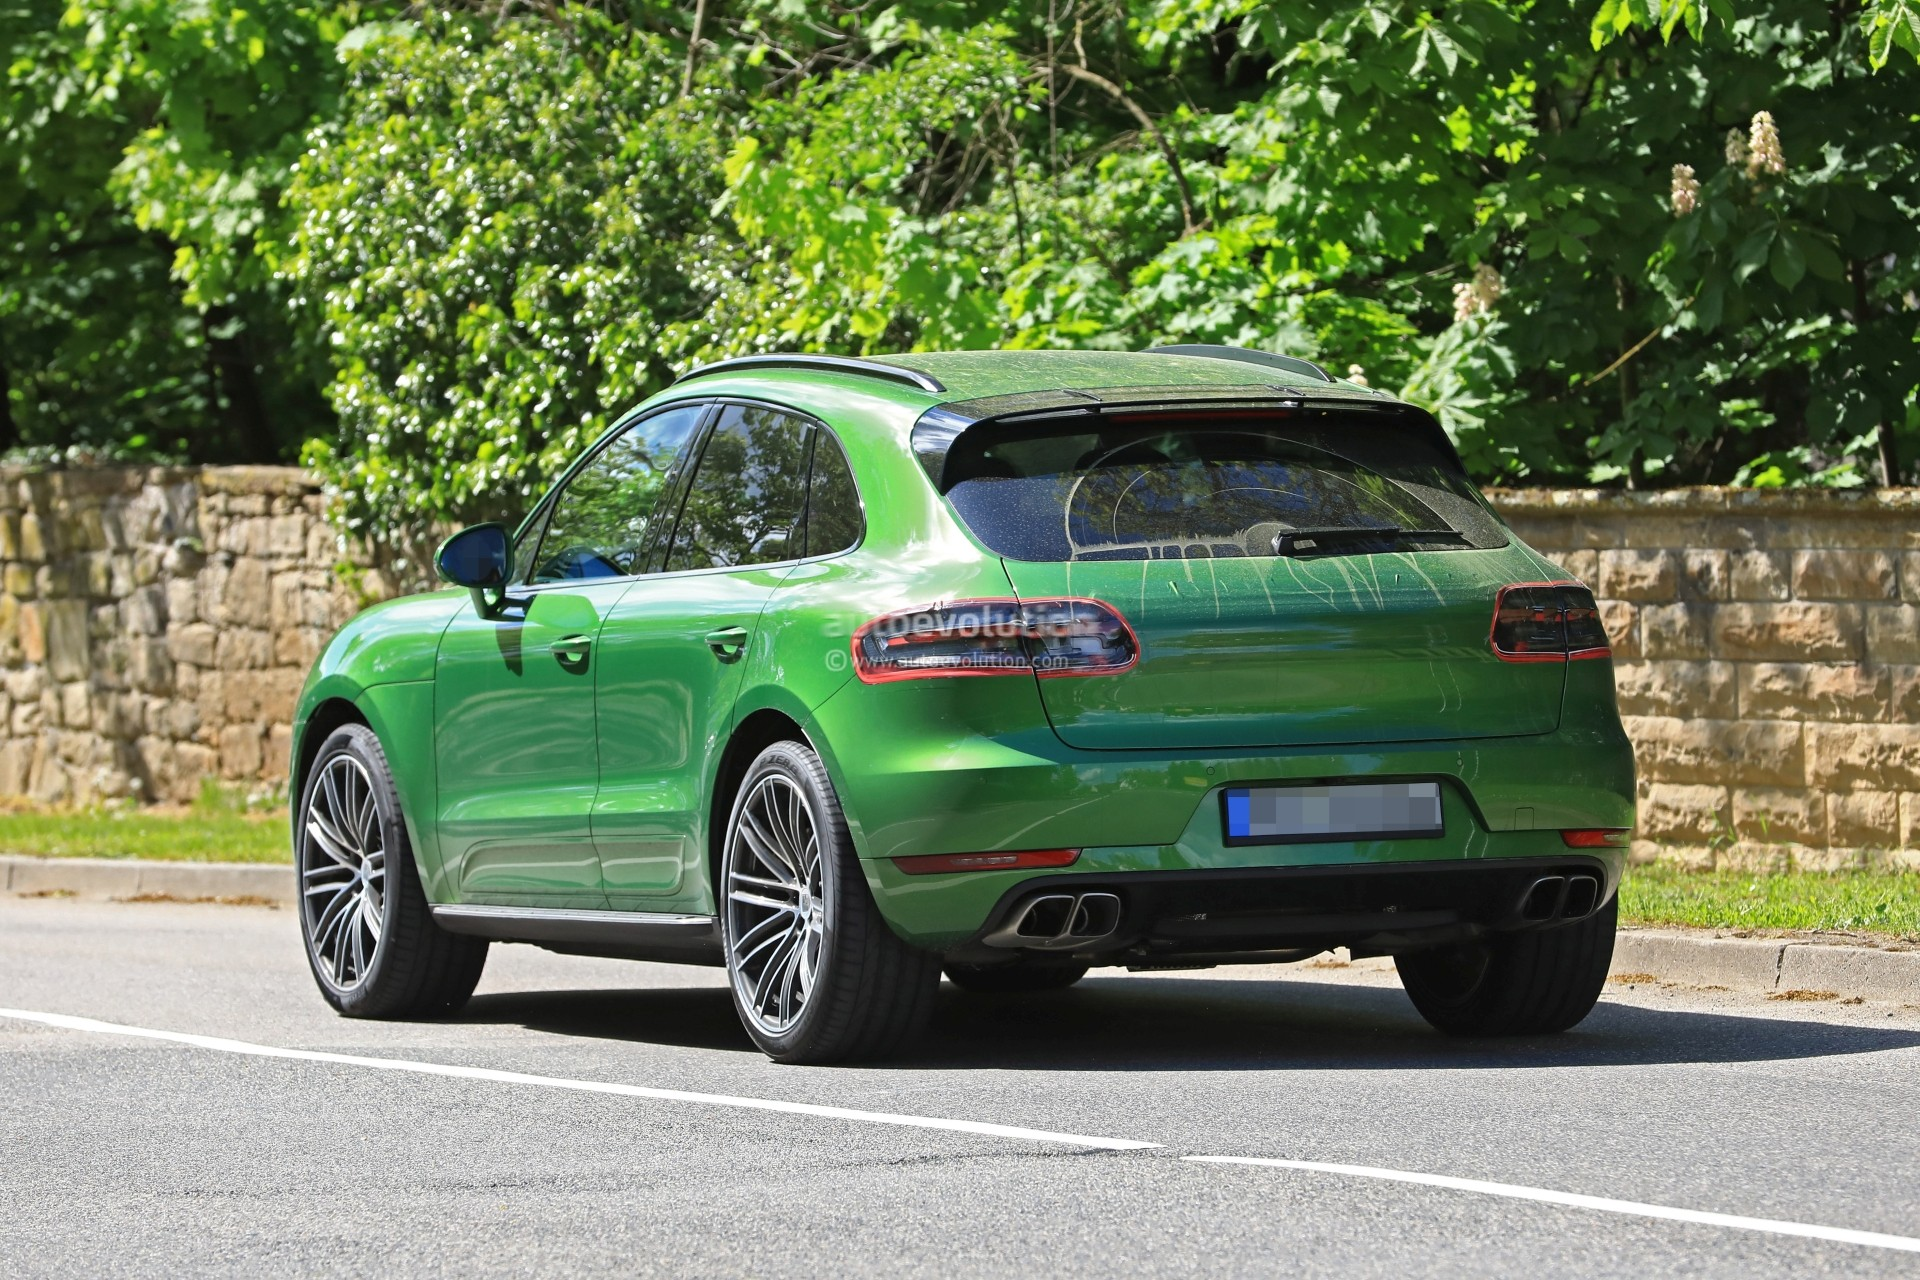 Porsche Planning Small SUV Below the Macan and Available with RWD, Rumor Says - autoevolution